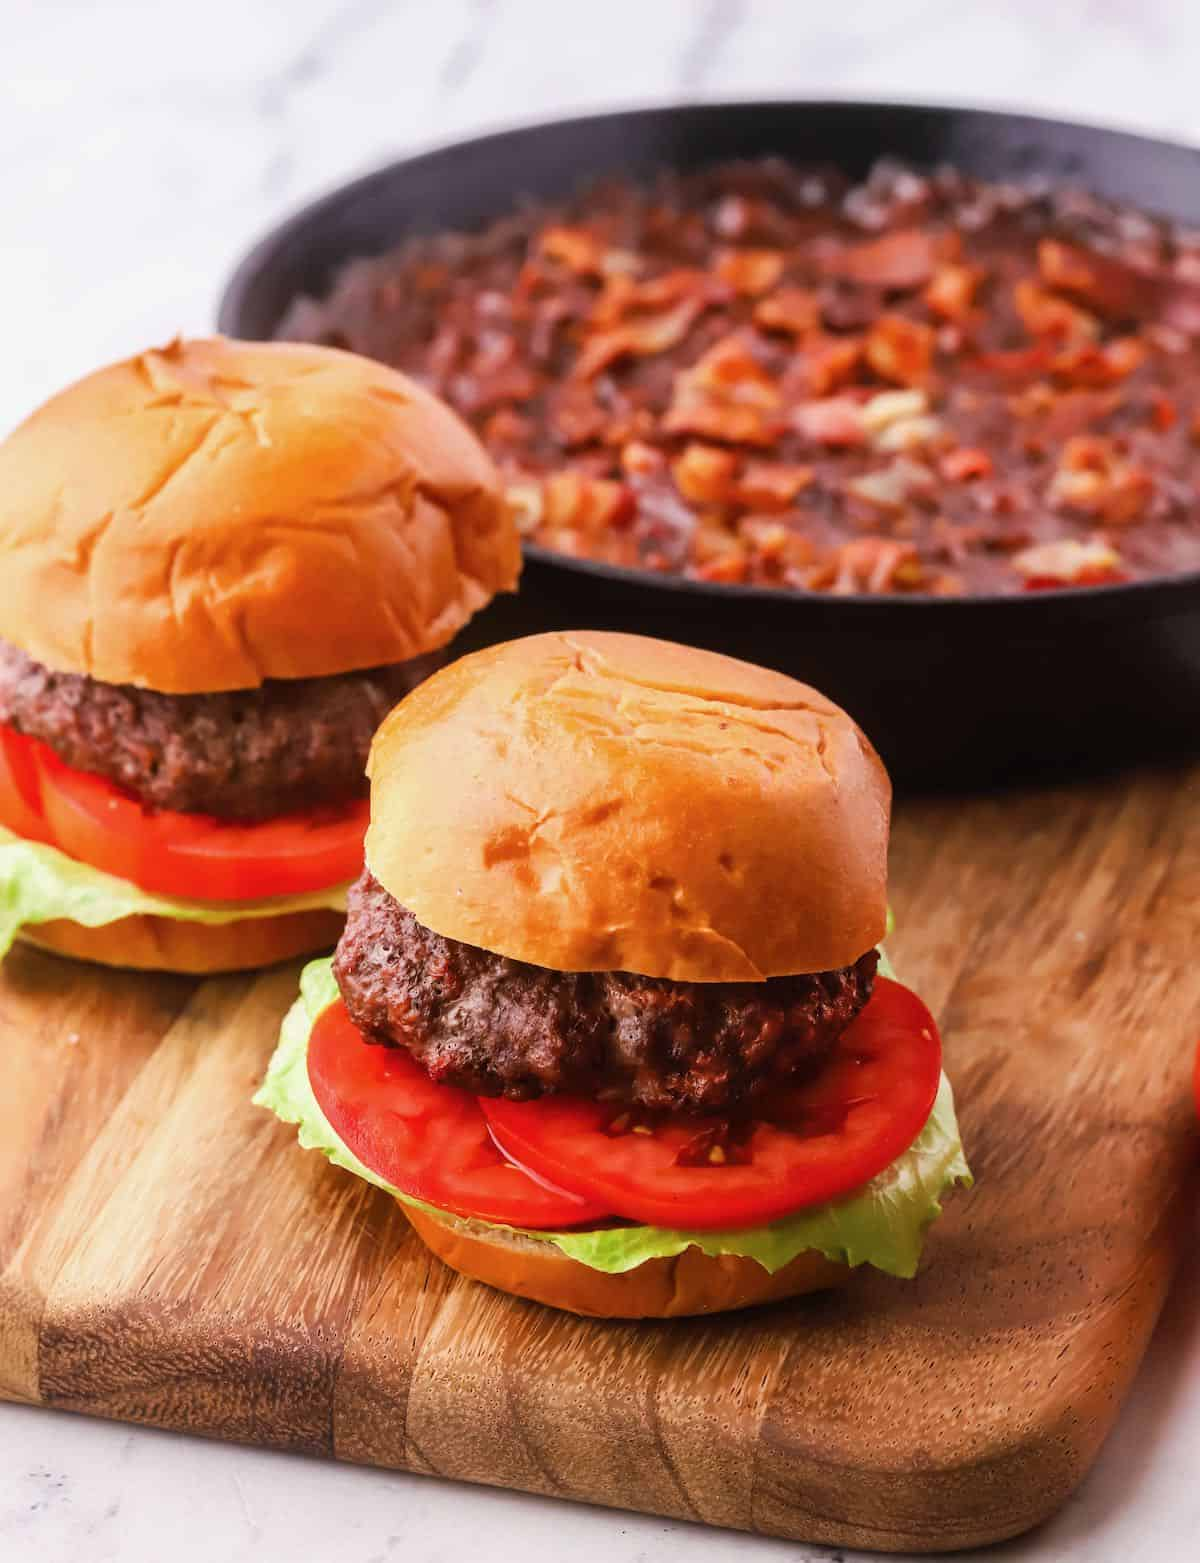 Two burgers on a wooden cutting board with a pan of baked beans.